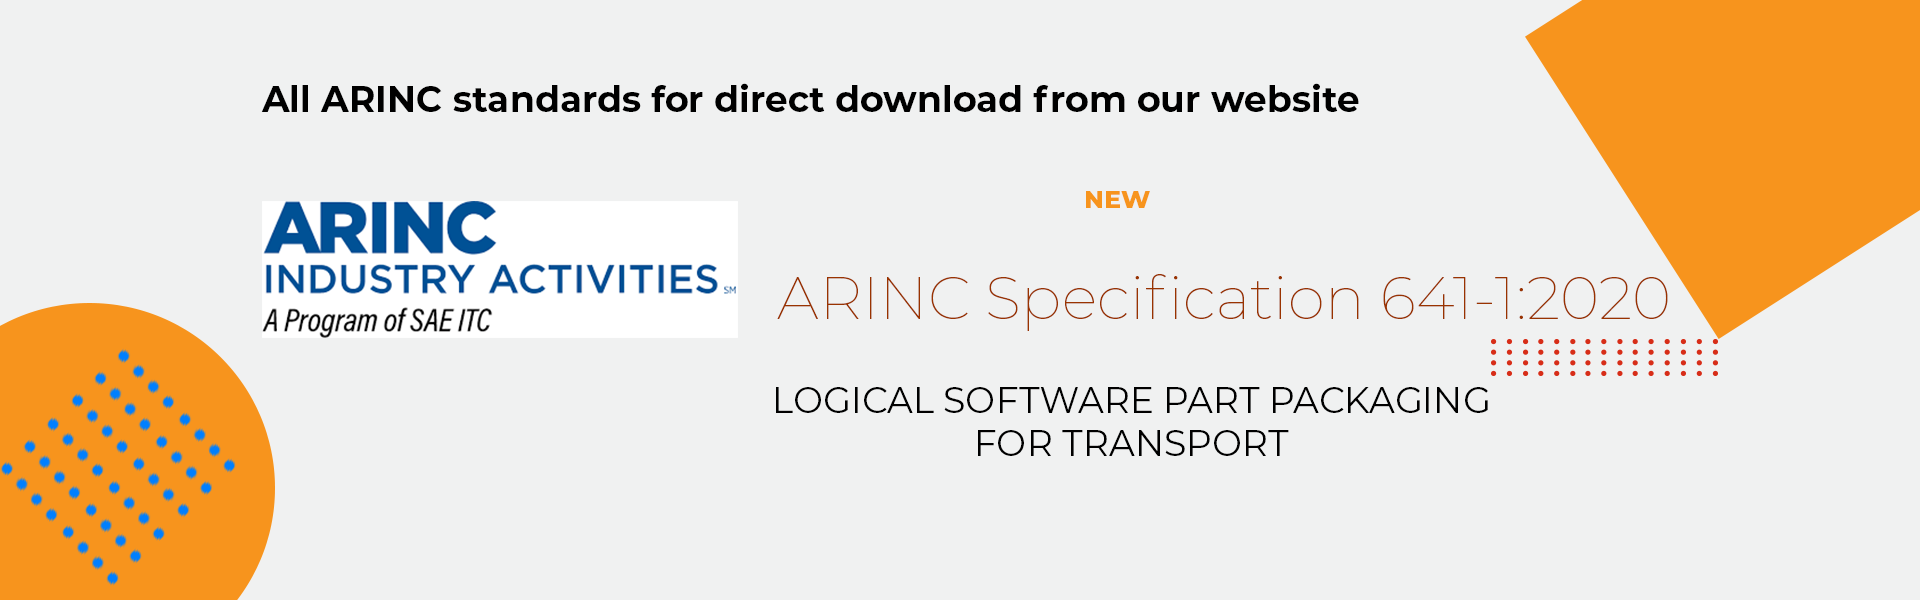 ARINC Industry Activities standards